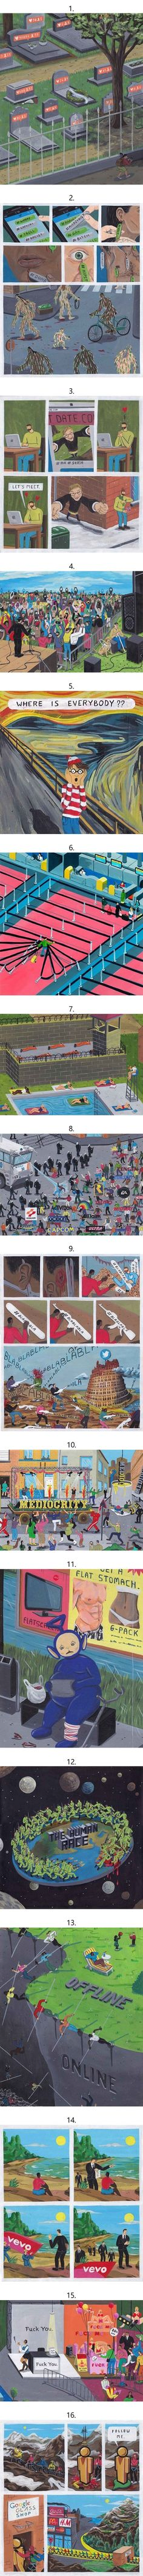 16 Powerful Images That Sum Up How Social Media Is Ruining Our Lives (By Brecht Vandenbroucke)